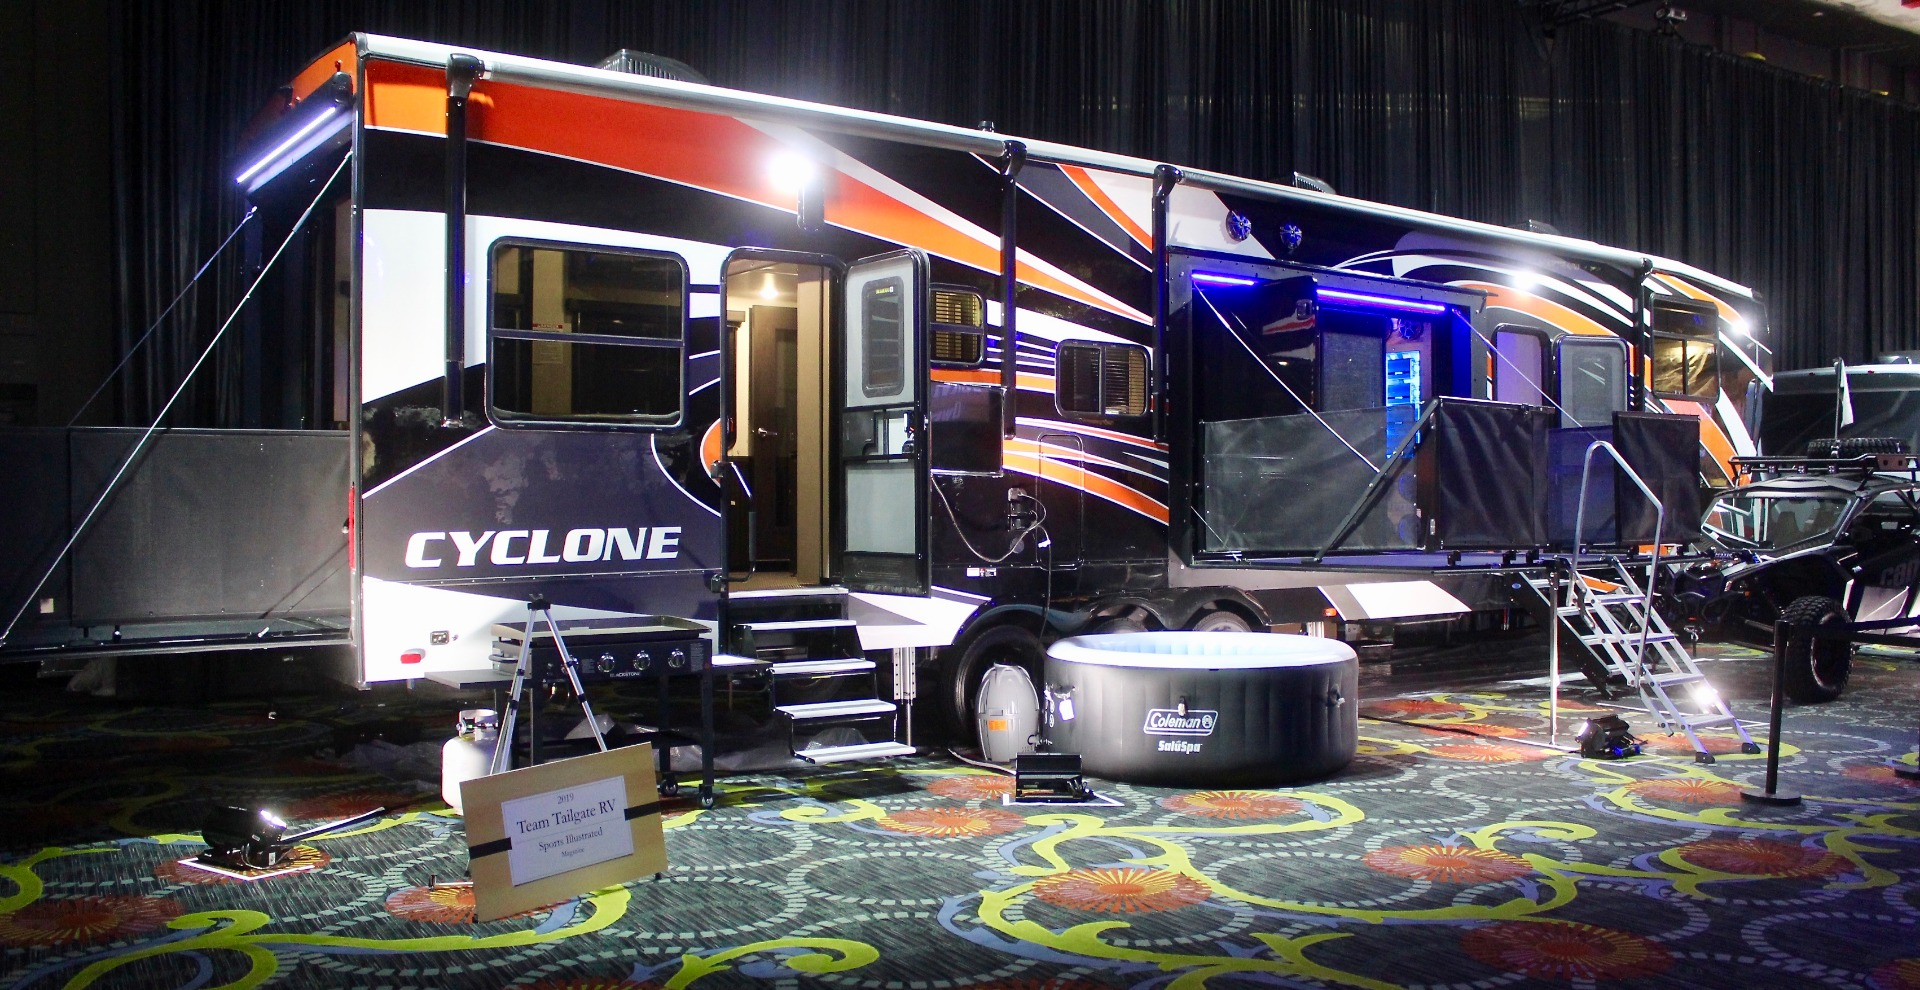 9162110c36c2 Ultimate tailgater RV turns parking lot into party with sports bars ...